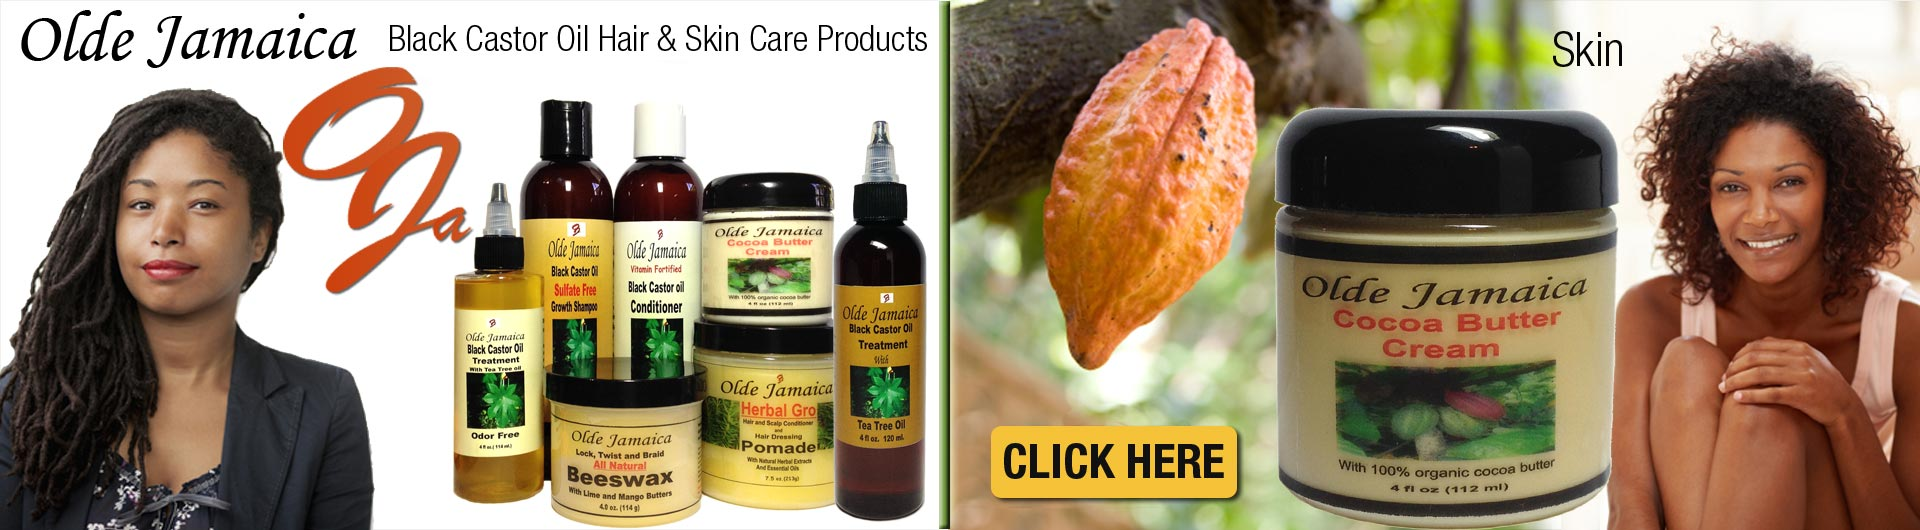 Shop Olde Jamaica all natural beauty products